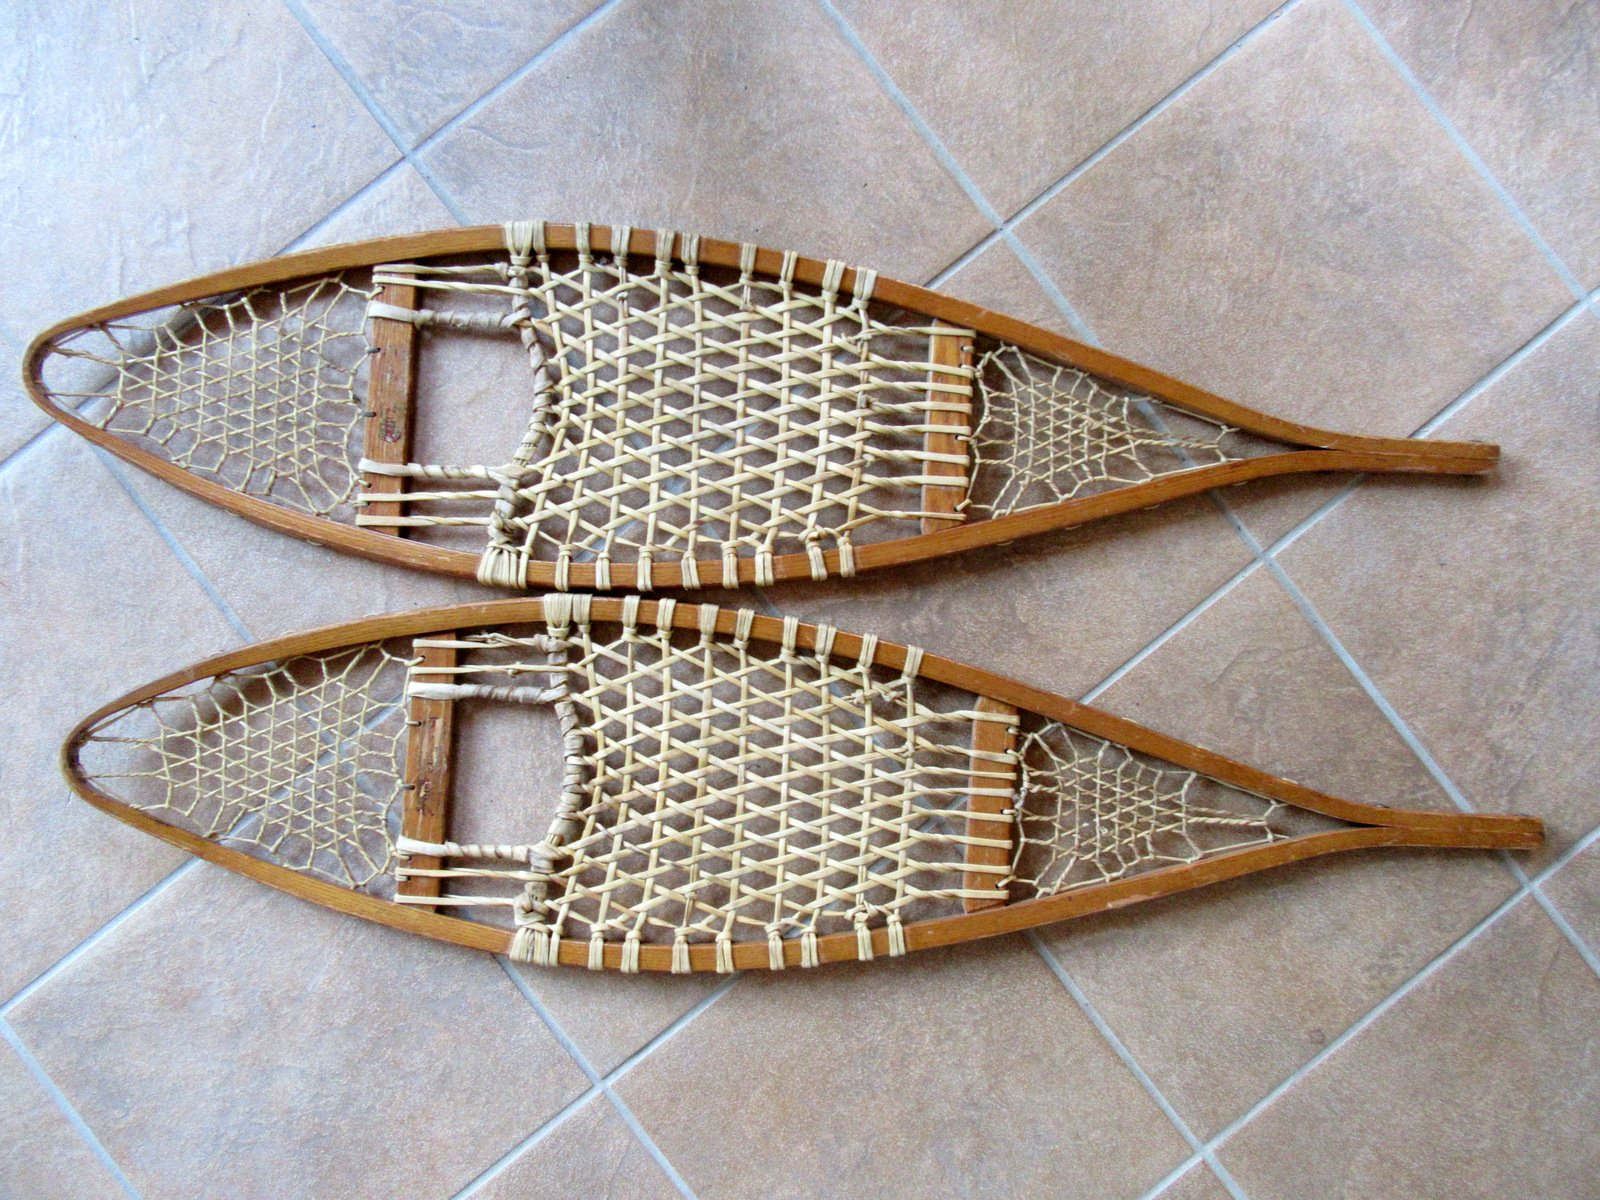 Vintage Wood Snowshoes 10 x 41 Inches https://t.co/2ttVqqCpqv https://t.co/bNuzCa4O7B